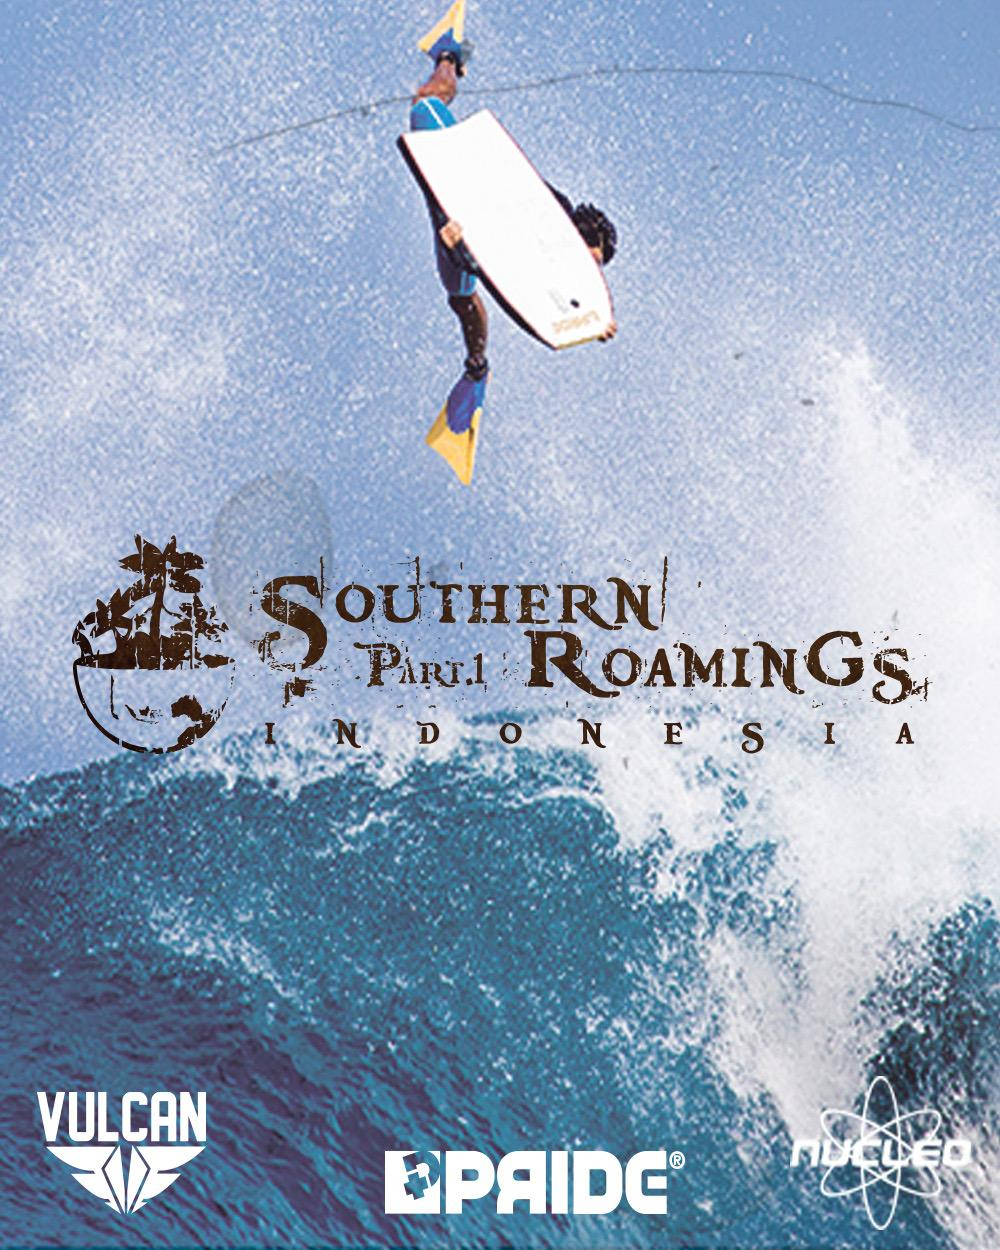 SOUTHERN ROUMINGS Pt1. Matias Diaz Indo